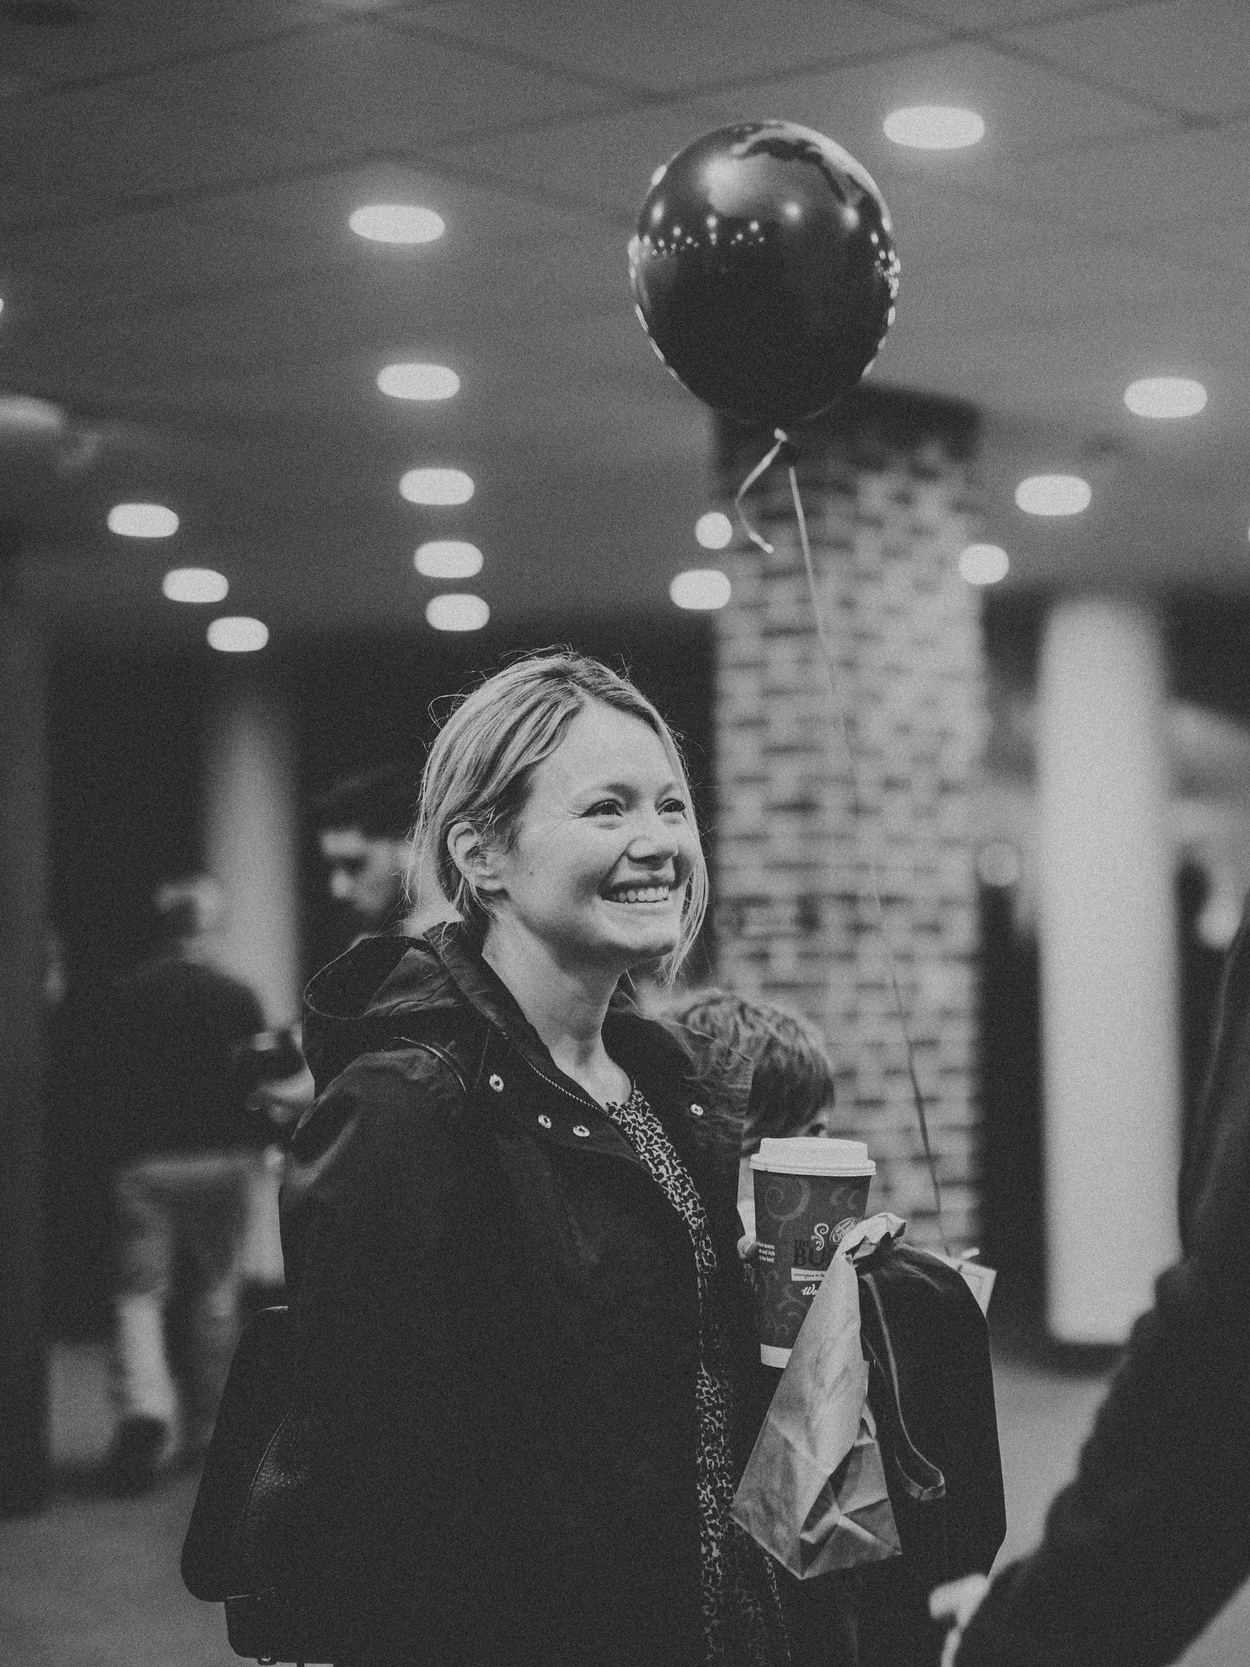 we're so glad you're here - Church of the Saviour exists to see lives radically changed & hearts transformed by the love of Jesus Christ. Whether you're a first time guest or a long-time member, we want you to feel welcomed into our community.Who We Are